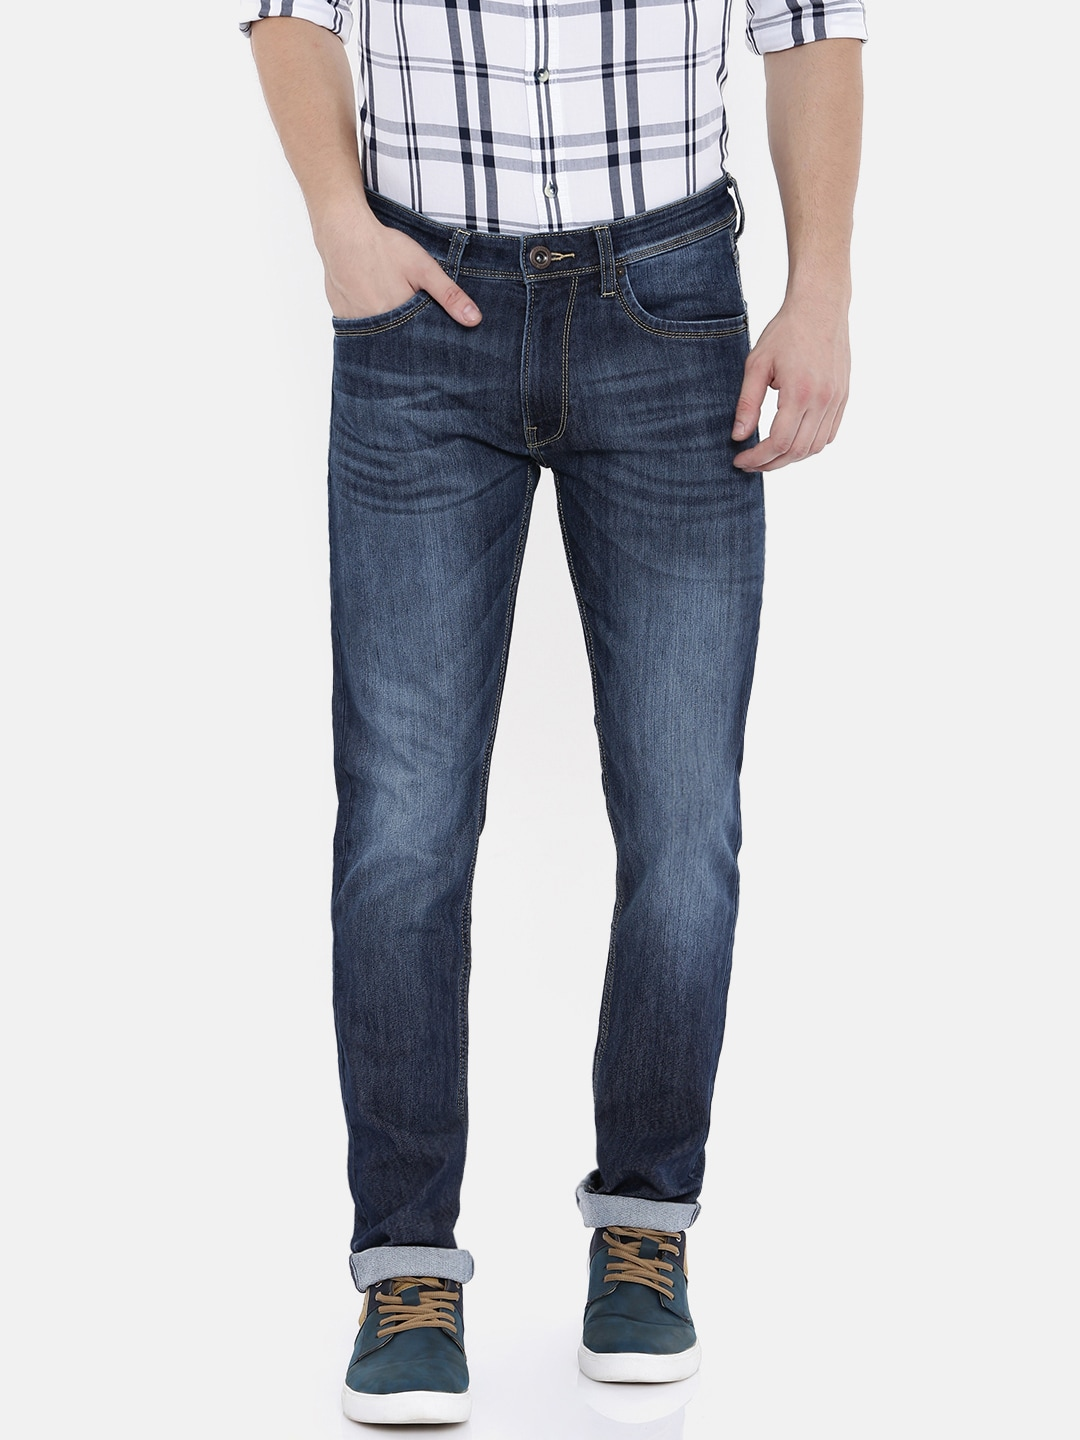 817bd72821 Pepe Jeans - Buy Pepe Jeans Clothing Online in India